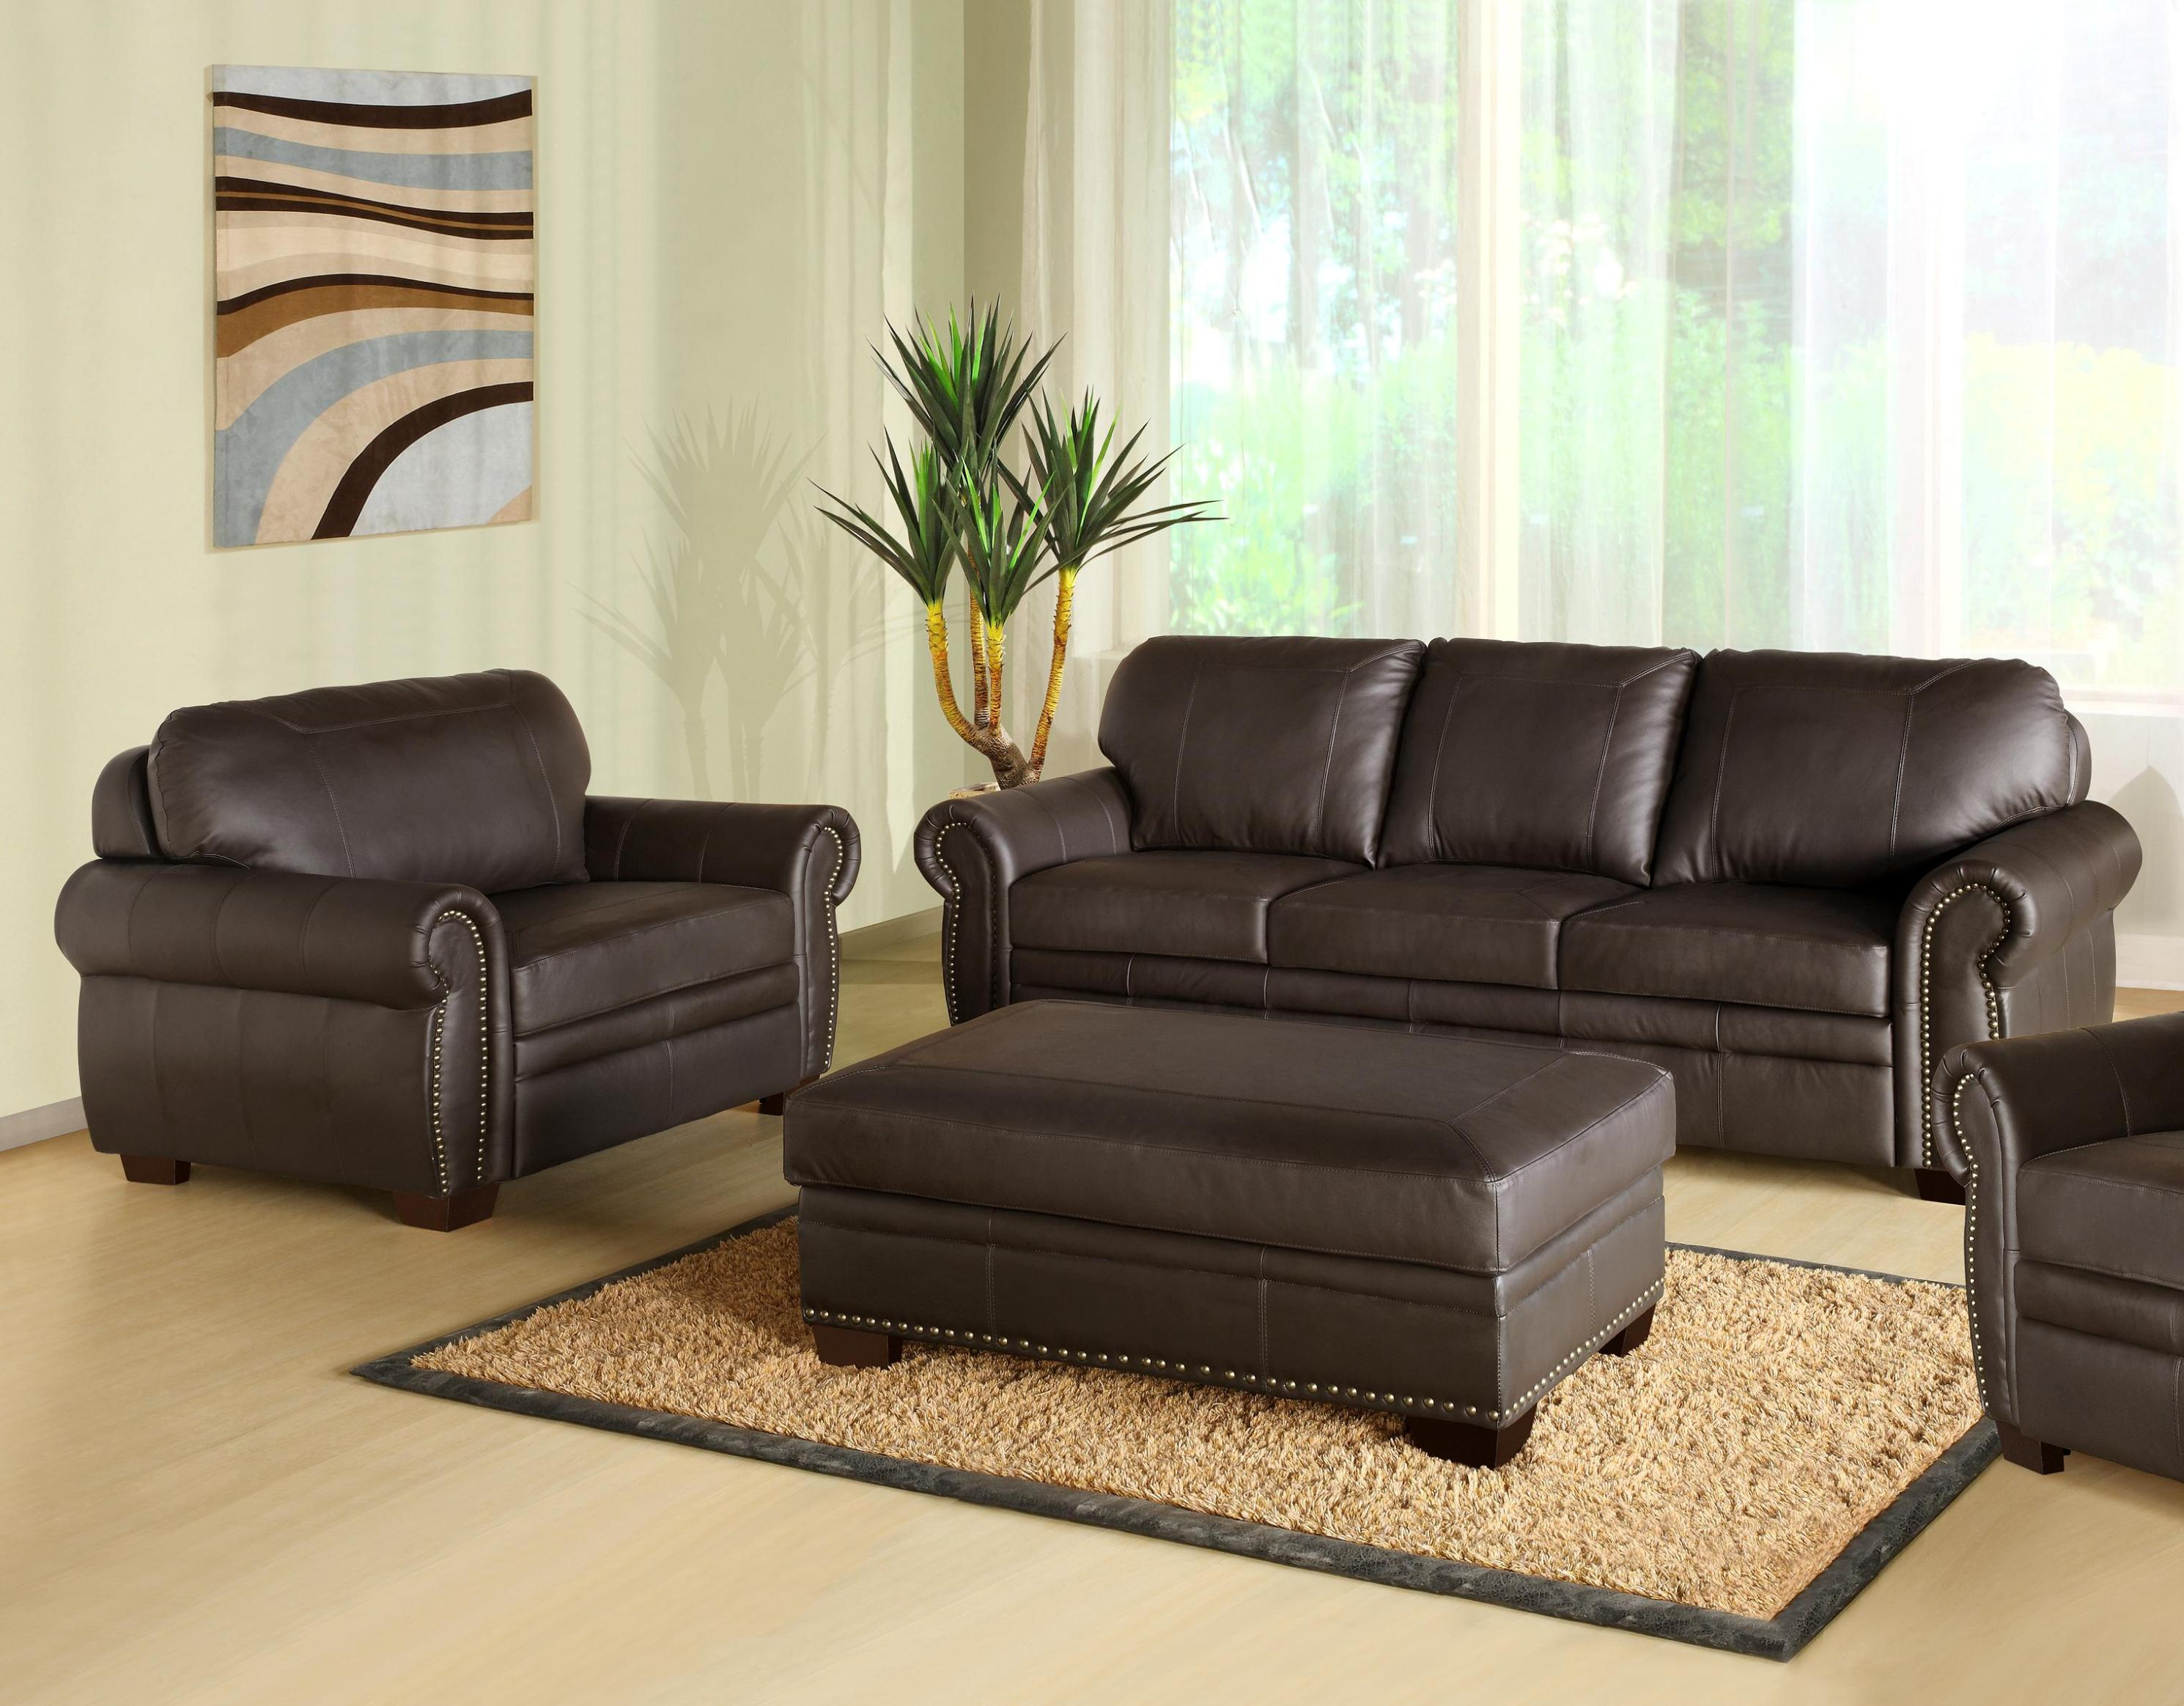 Image of: Oversized Leather Chair And Ottoman